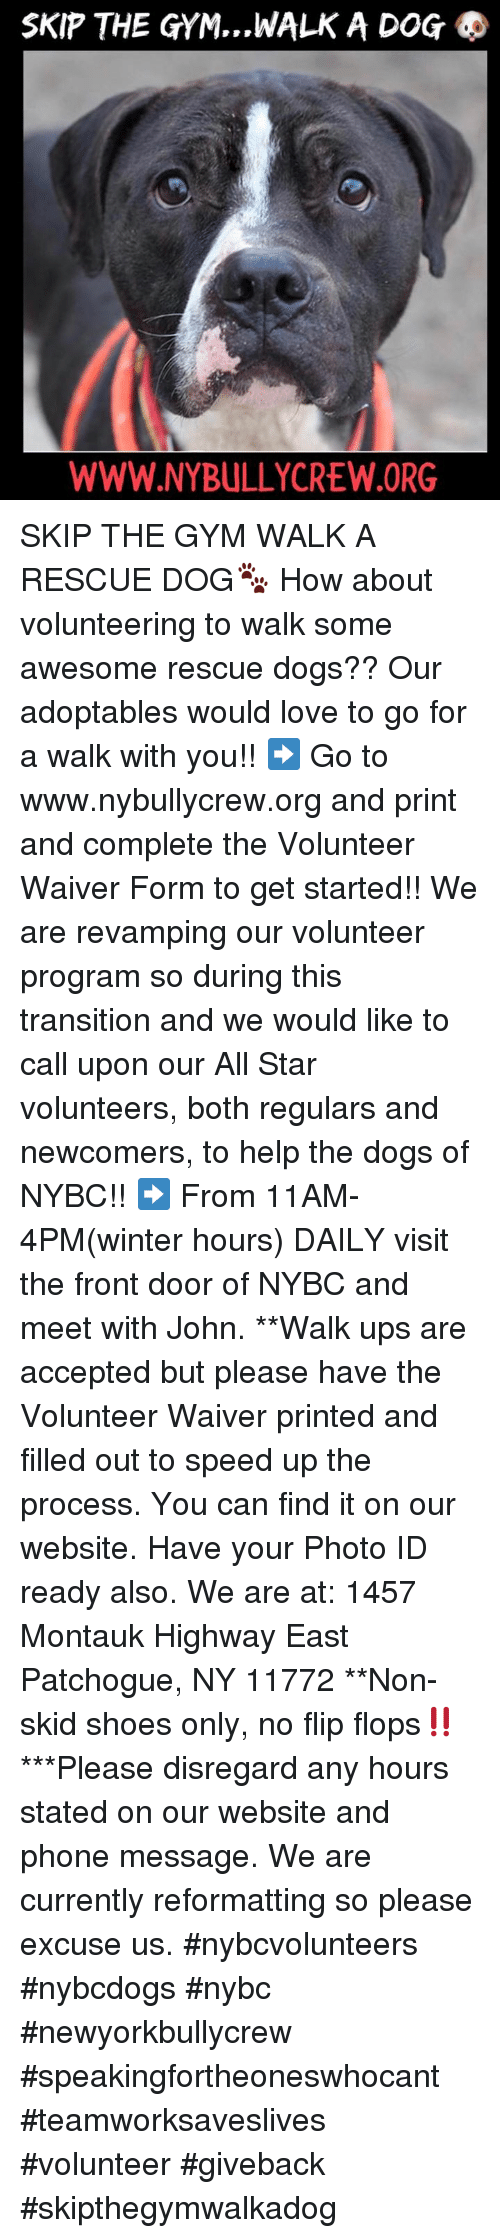 All Star, Dogs, and Gym: SKIP THE GYM, ,,WALK A DOG  WWW.NYBULLYCREW.ORG SKIP THE GYM WALK A RESCUE DOG🐾 How about volunteering to walk some awesome rescue dogs?? Our adoptables would love to go for a walk with you!!  ➡️ Go to www.nybullycrew.org and print and complete the Volunteer Waiver Form to get started!!    We are revamping our volunteer program so during this transition and we would like to call upon our All Star volunteers, both regulars and newcomers, to help the dogs of NYBC!! ➡️ From 11AM-4PM(winter hours)  DAILY visit the front door of NYBC and meet with John.   **Walk ups are accepted but please have the Volunteer Waiver printed and filled out to speed up the process. You can find it on our website. Have your Photo ID ready also.  We are at: 1457 Montauk Highway East Patchogue, NY 11772 **Non-skid shoes only, no flip flops‼️ ***Please disregard any hours stated on our website and phone message. We are currently reformatting so please excuse us.  #nybcvolunteers #nybcdogs  #nybc #newyorkbullycrew  #speakingfortheoneswhocant #teamworksaveslives #volunteer #giveback #skipthegymwalkadog